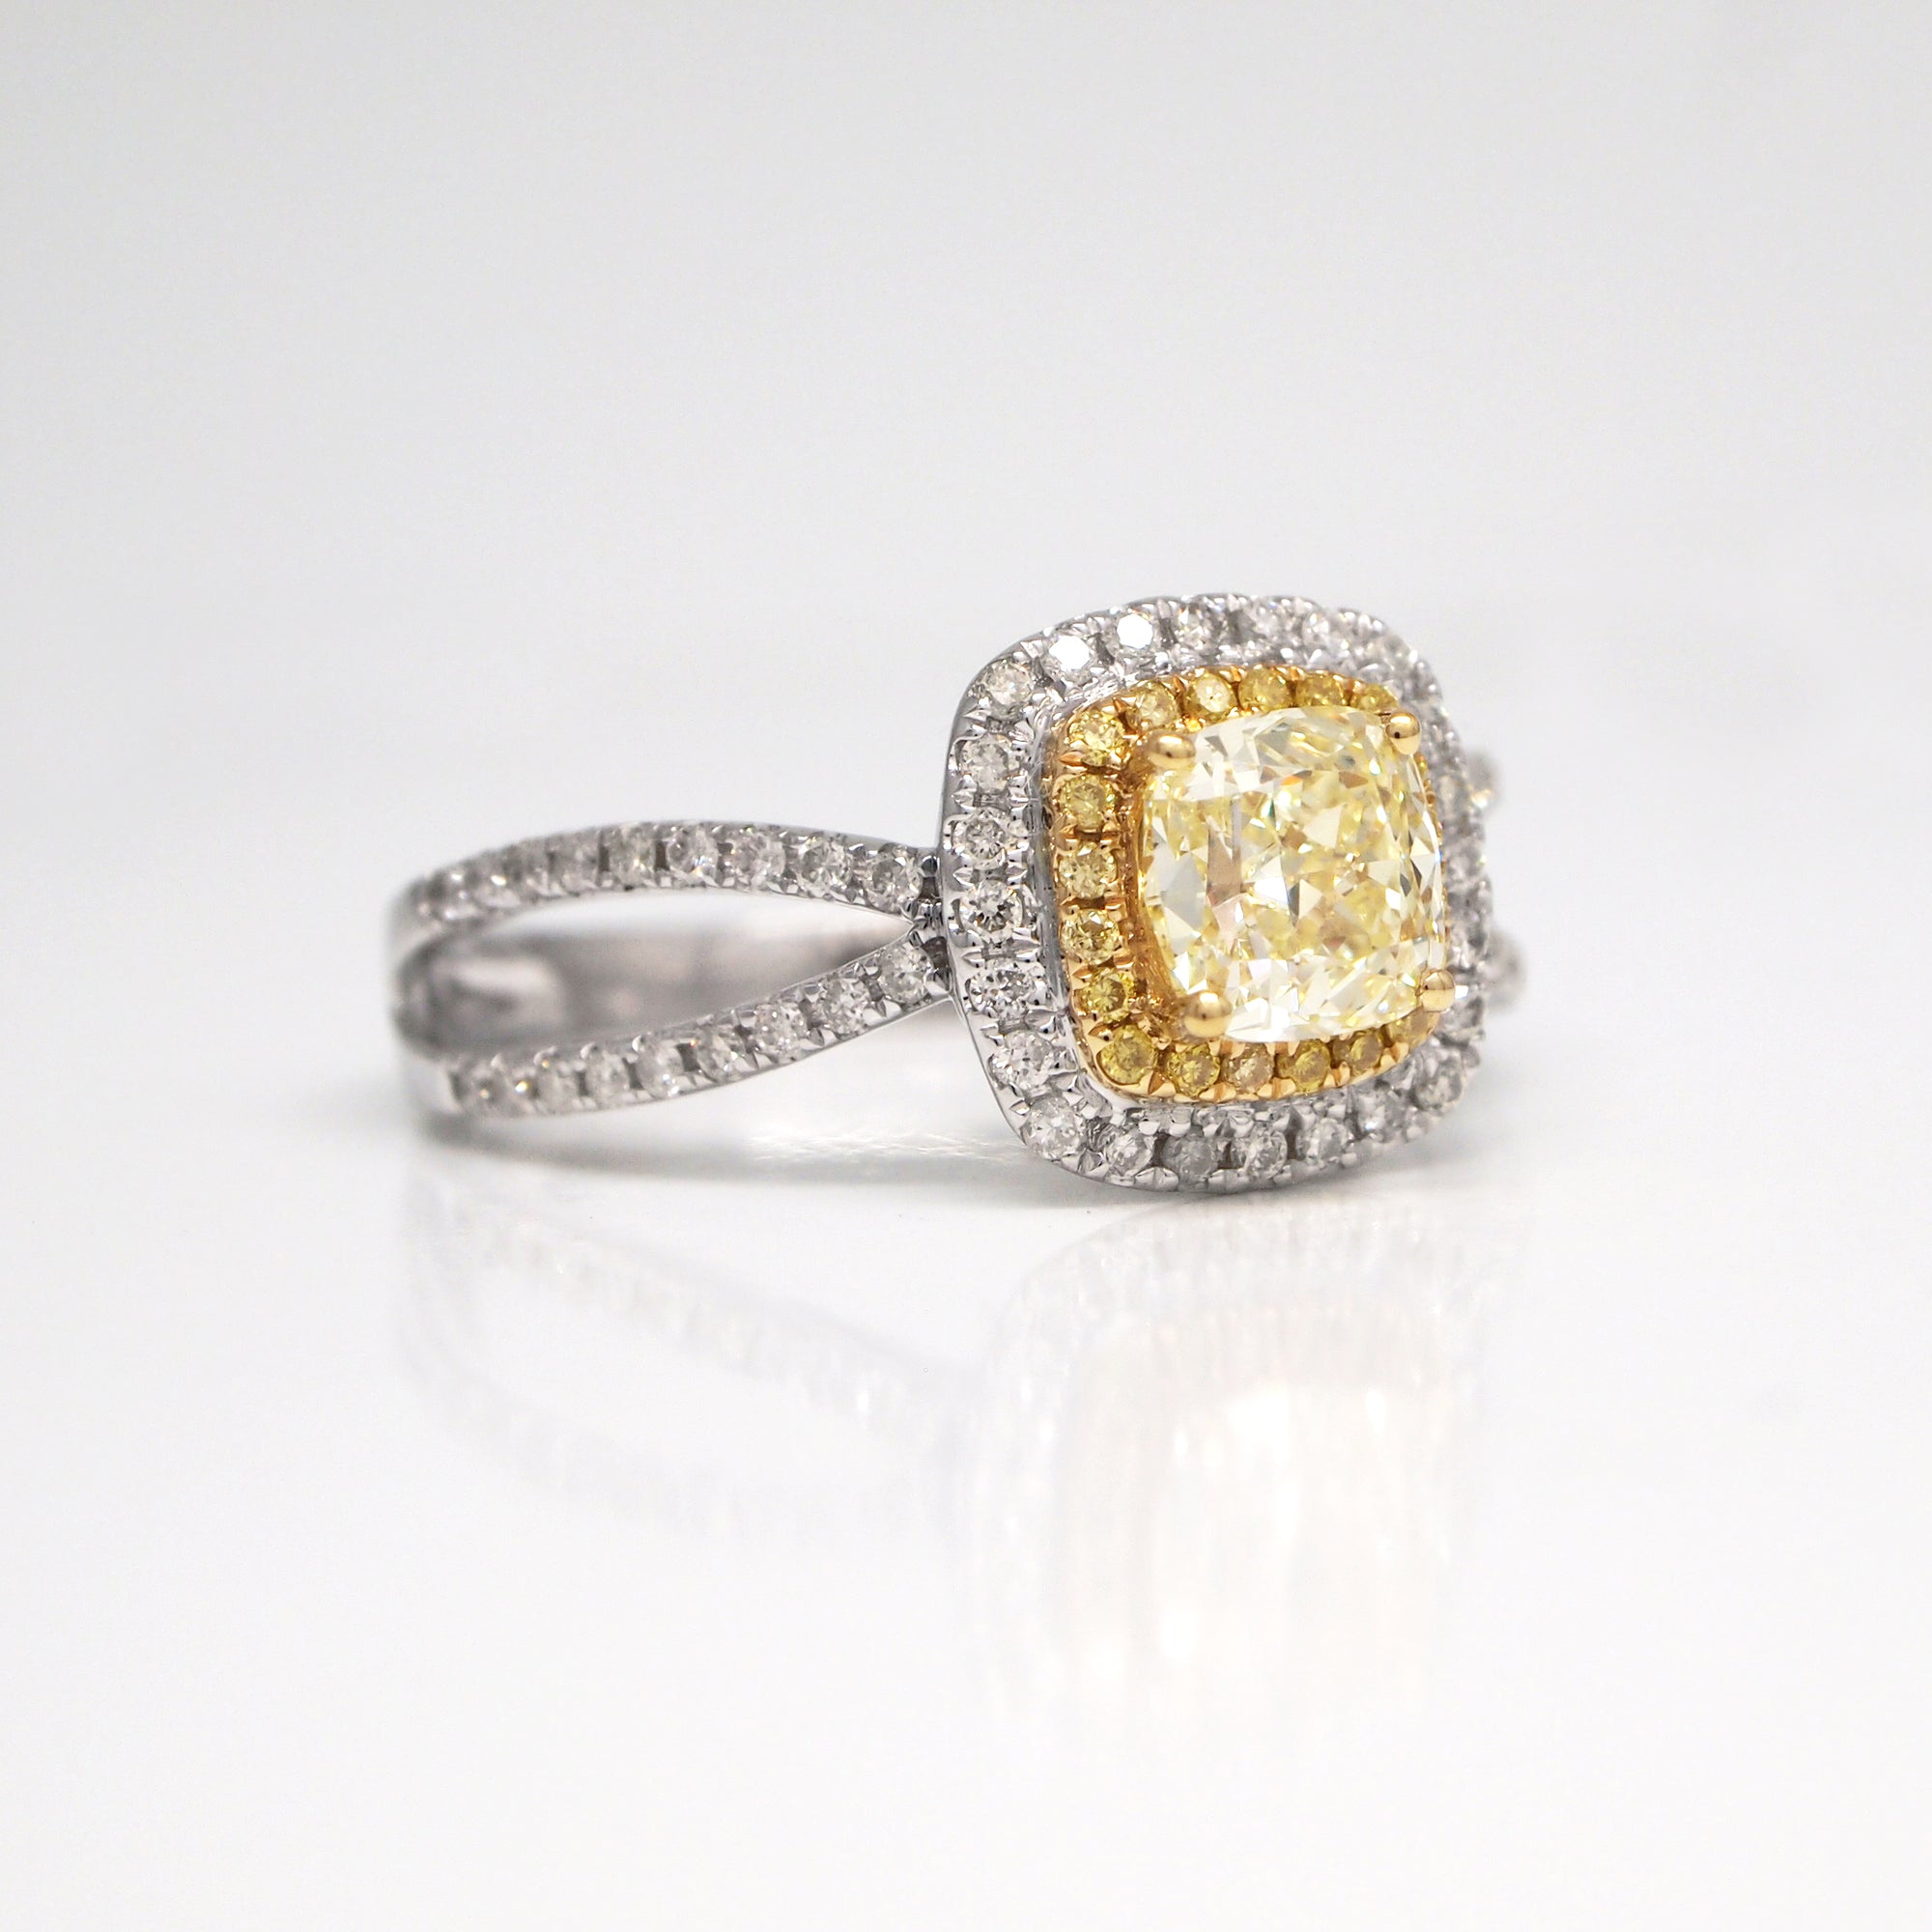 18K white gold split-shank yellow diamond engagement ring with GIA certificate